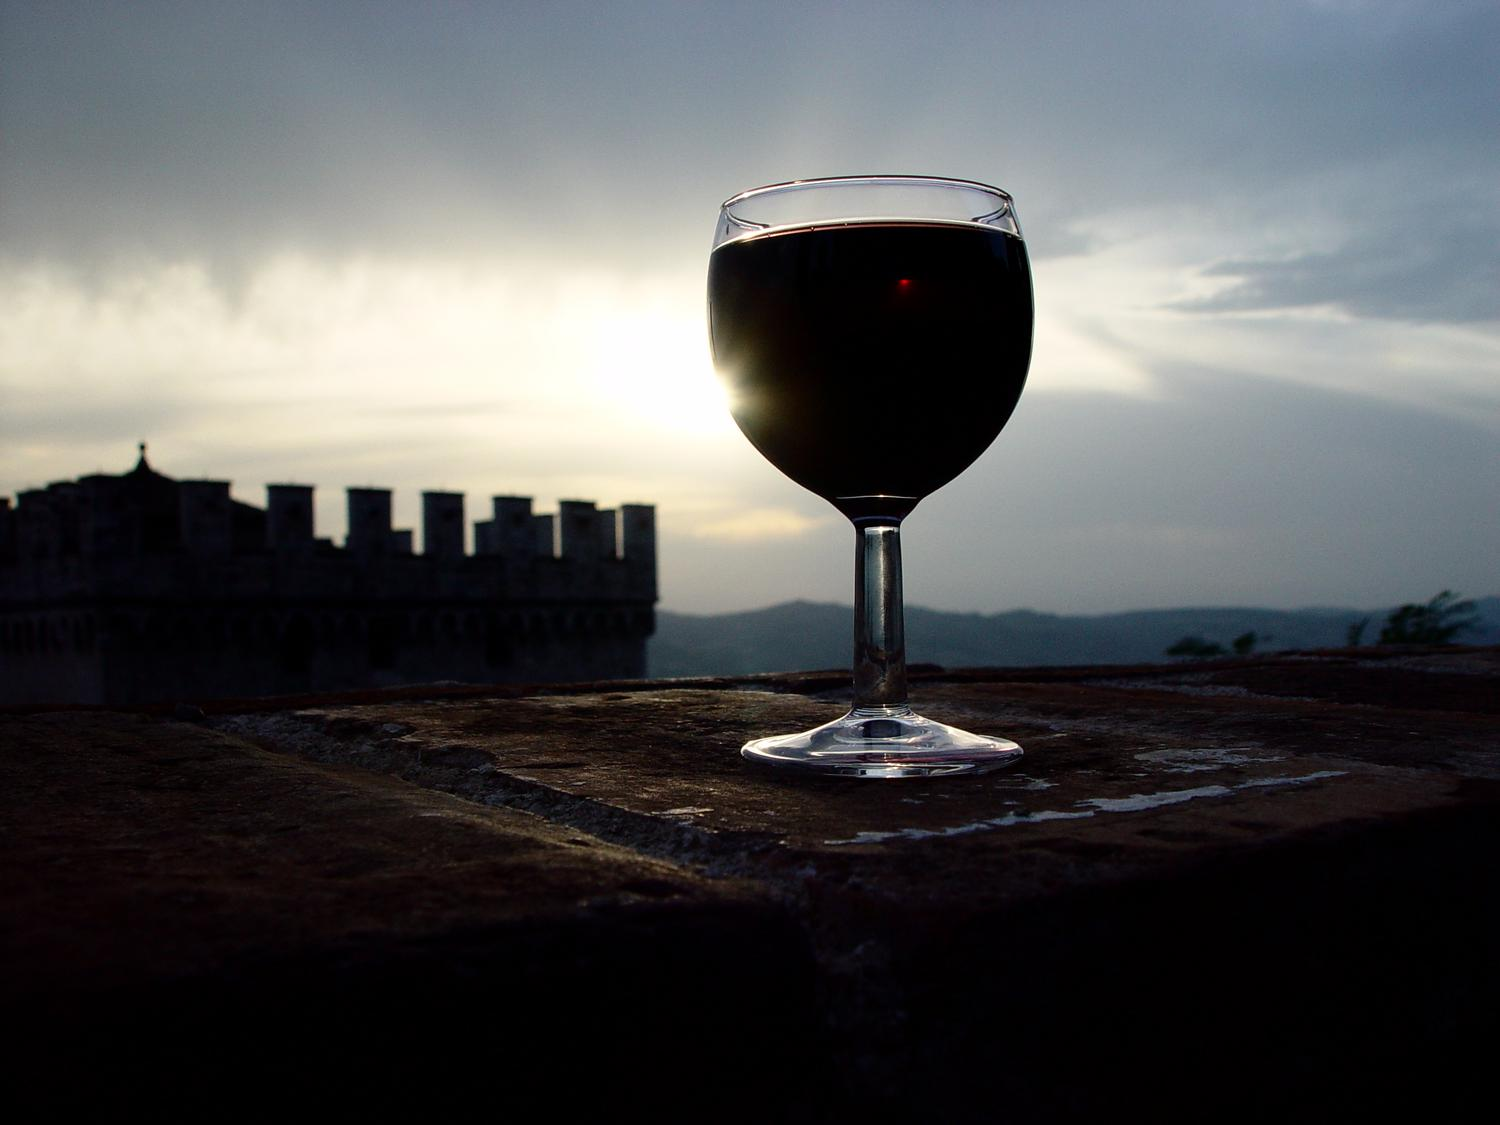 - Sunset in the palazzo, made perfect with a glass of wine - A trip to Rome - by Tony Karp - Rome - Vatican - Gubbio - Viterbo - Spoleto - - - art  - photography - by Tony Karp